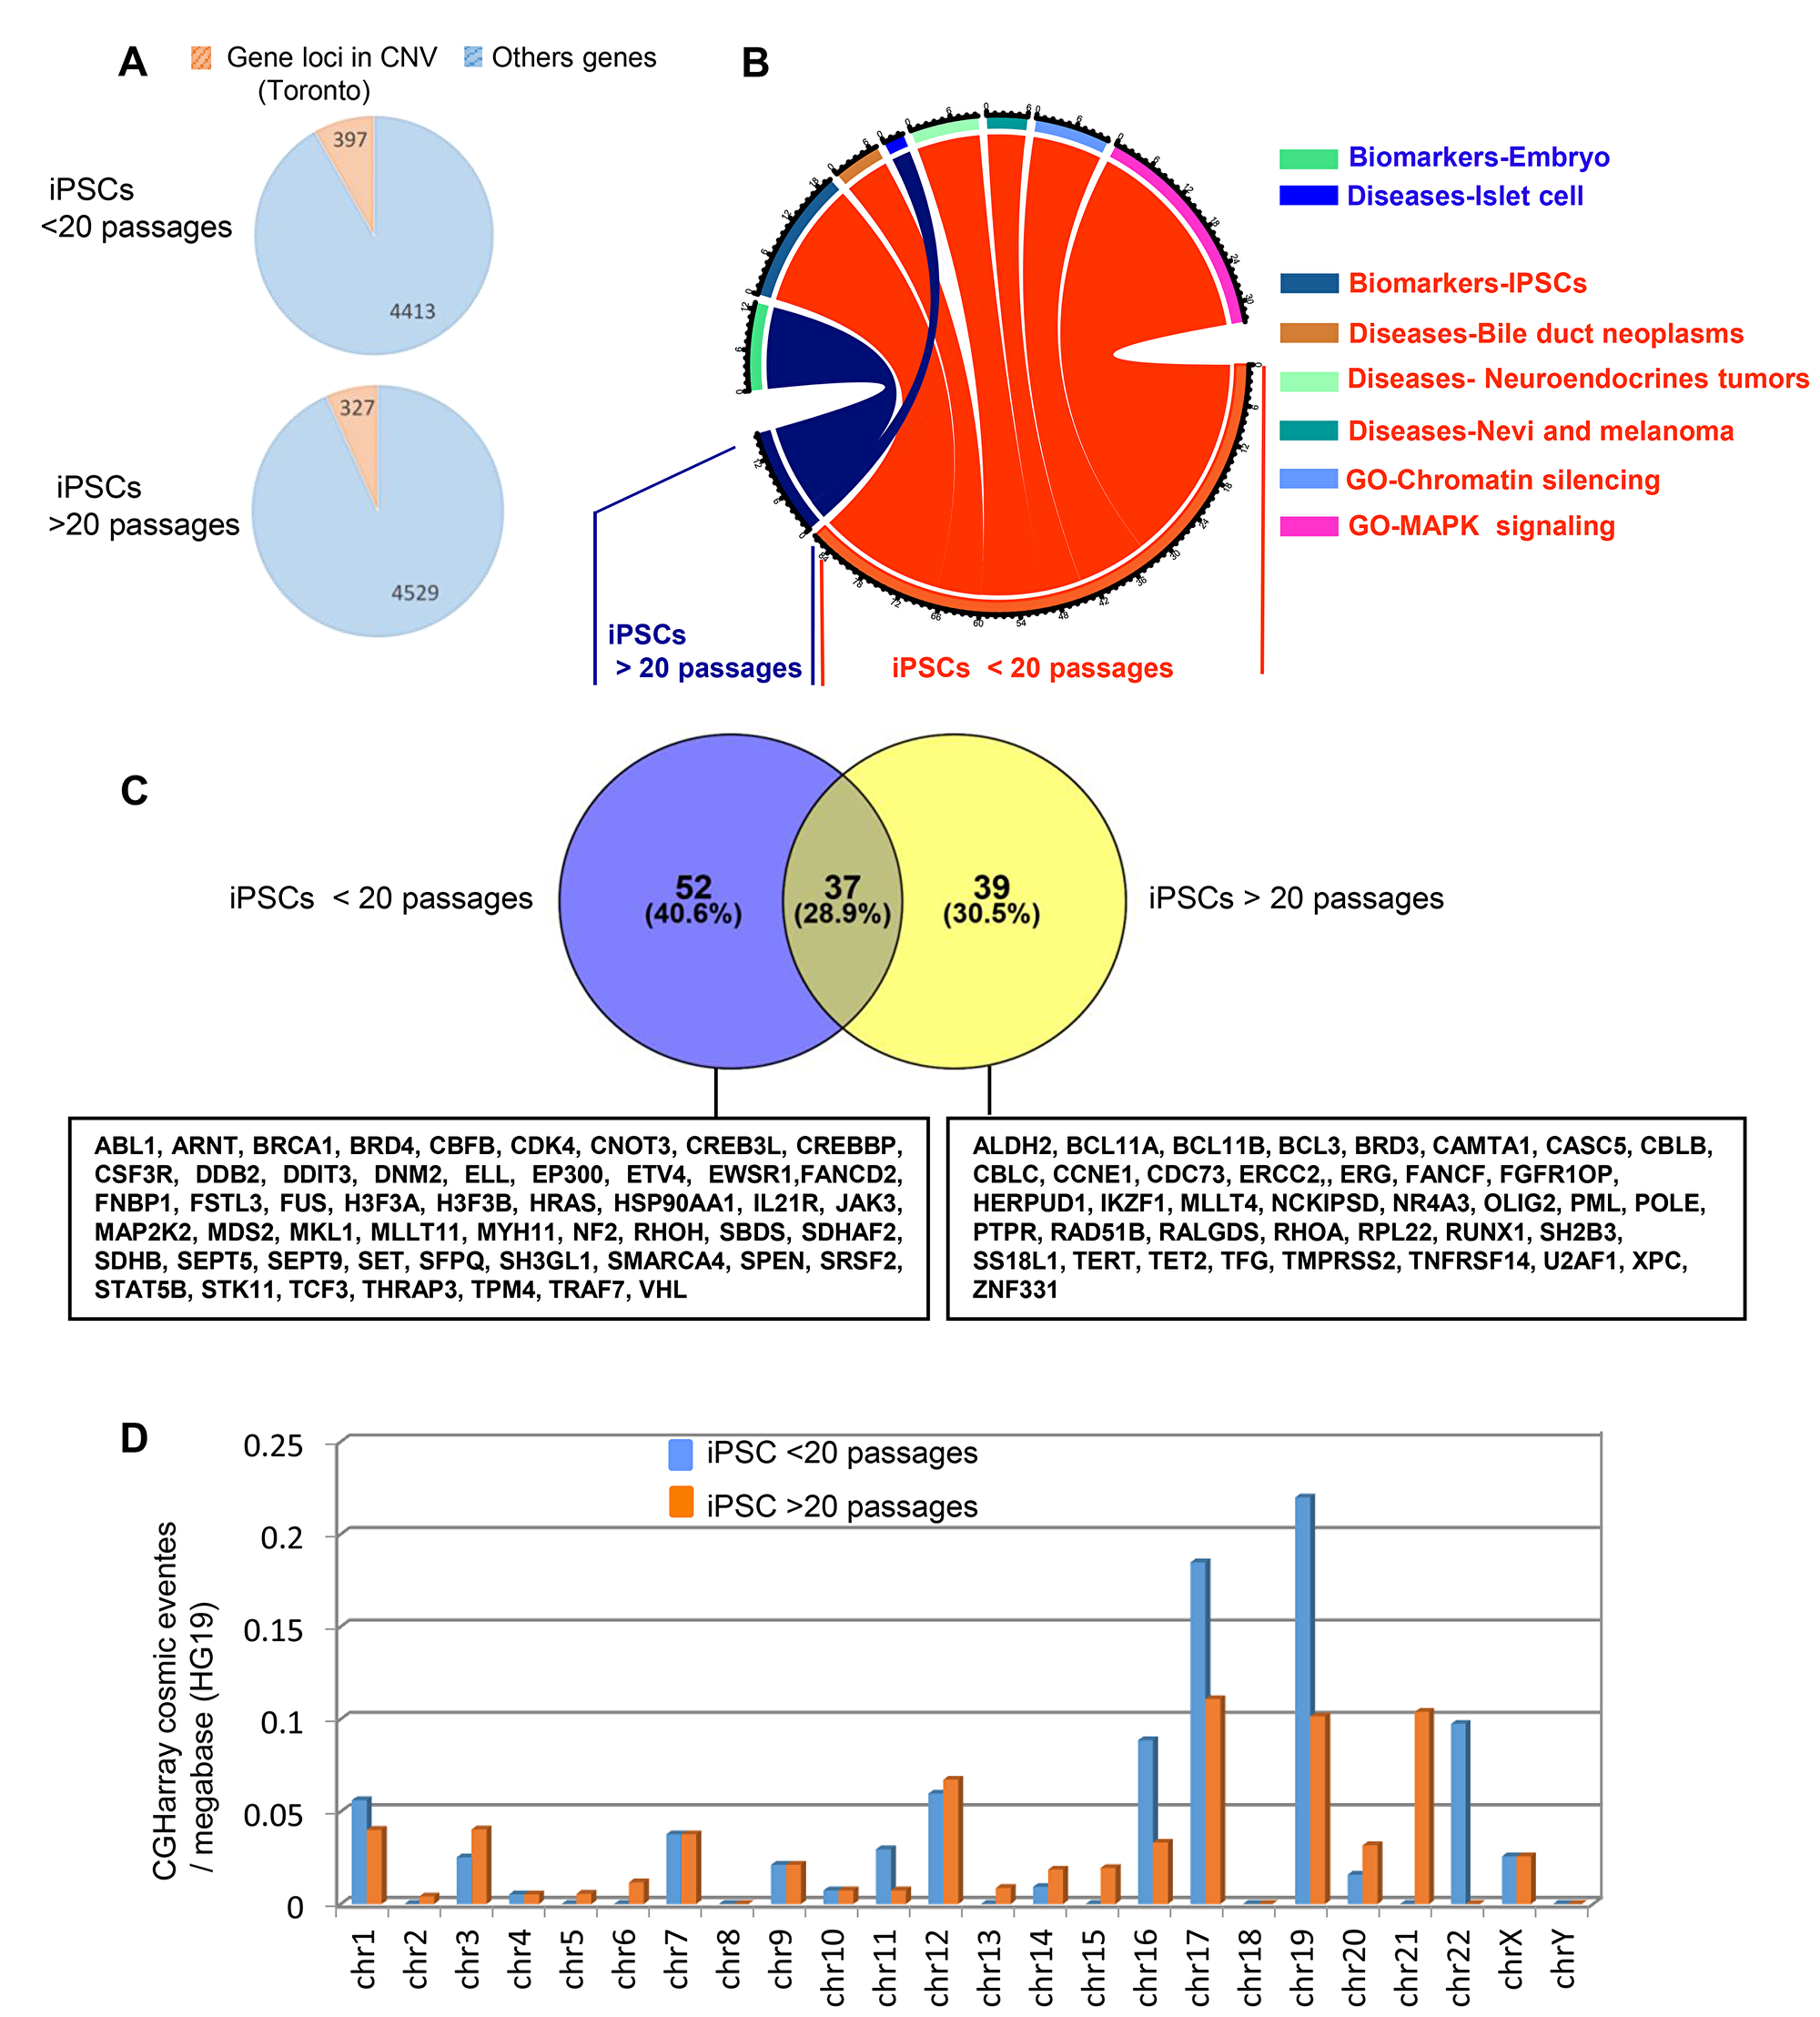 Passage number rate integration analysis of cancer related gene locus found to be altered by aCGH in hiPSCs.